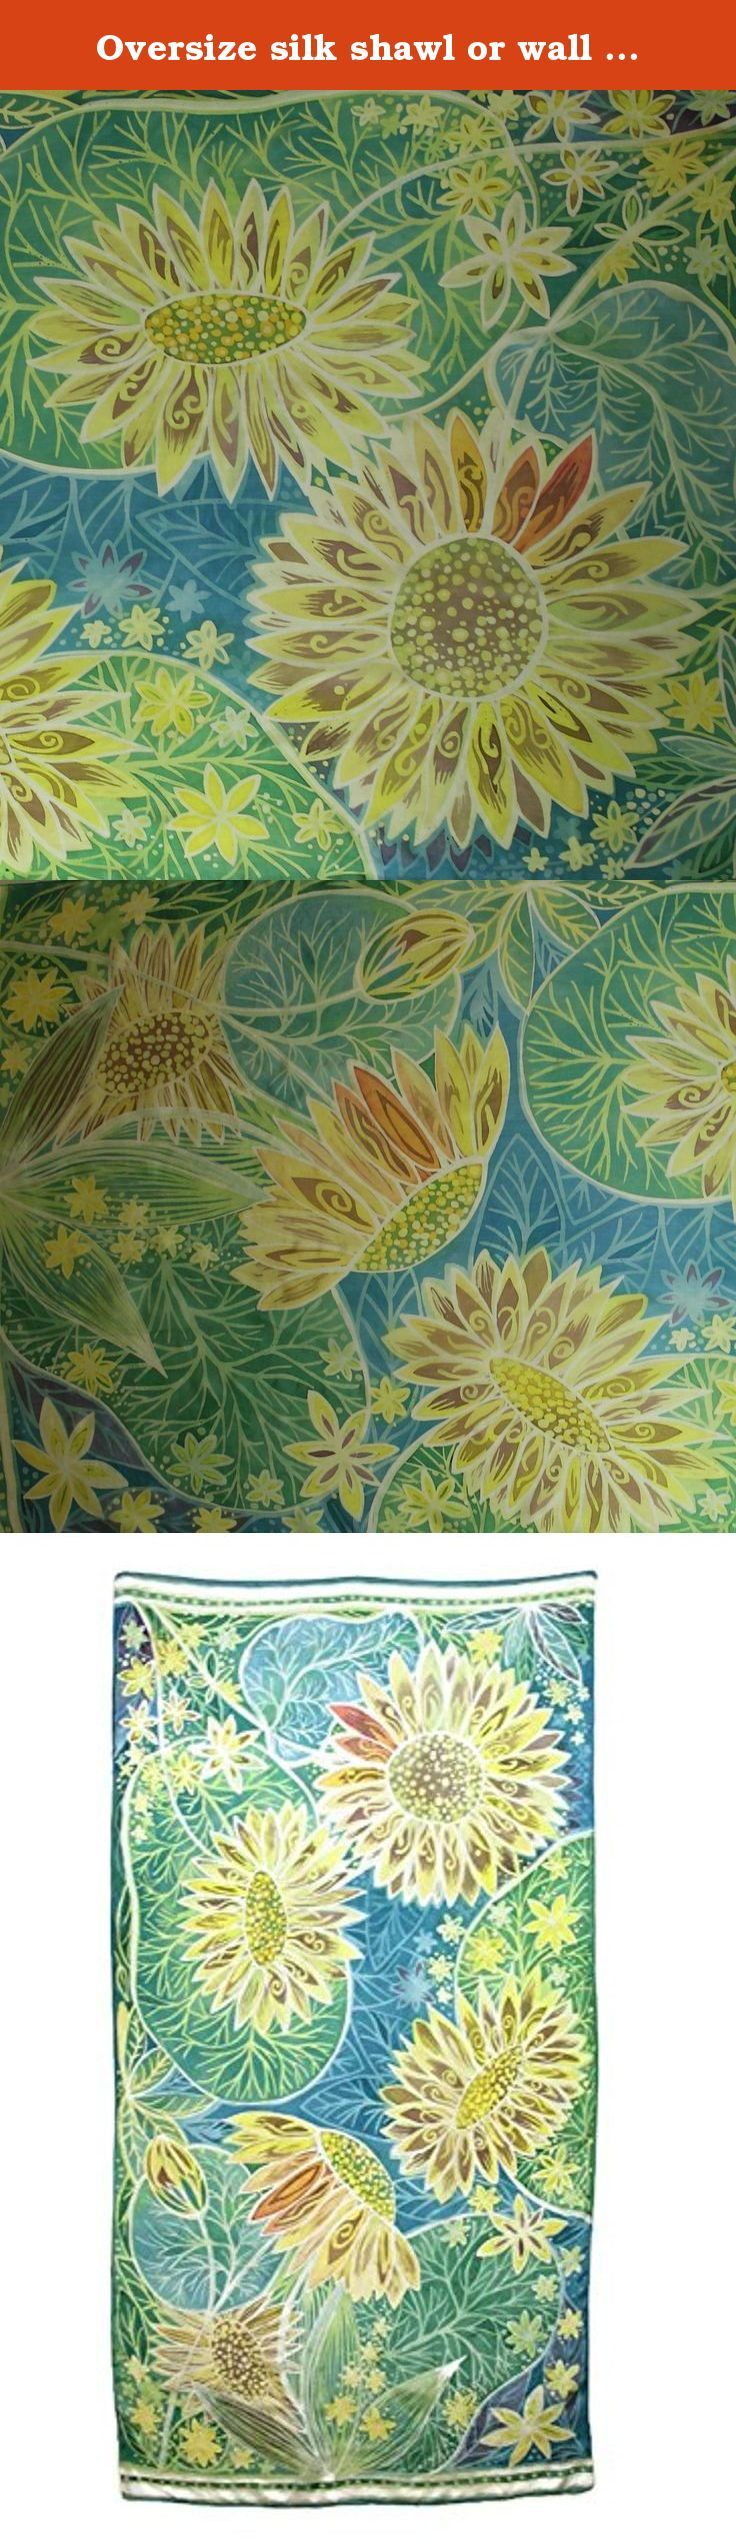 Oversize silk shawl or wall art: Hot wax batik on silk. Floral pattern. Sunflower art. Original painting on silk.Very delicate, soft and a little bit shimmering lightwear 100% natural silk (pongee5) with hand rolled hems. Size: approx.35 x 71 inches (90 x 180 cm). Care instructions: Please hand wash only in lukewarm water with one drop of delicate detergent. Do not wring or twist - roll in towel to extract water. Iron while silk is a little bit wet. I ship worldwide via Latvijas Pasts…